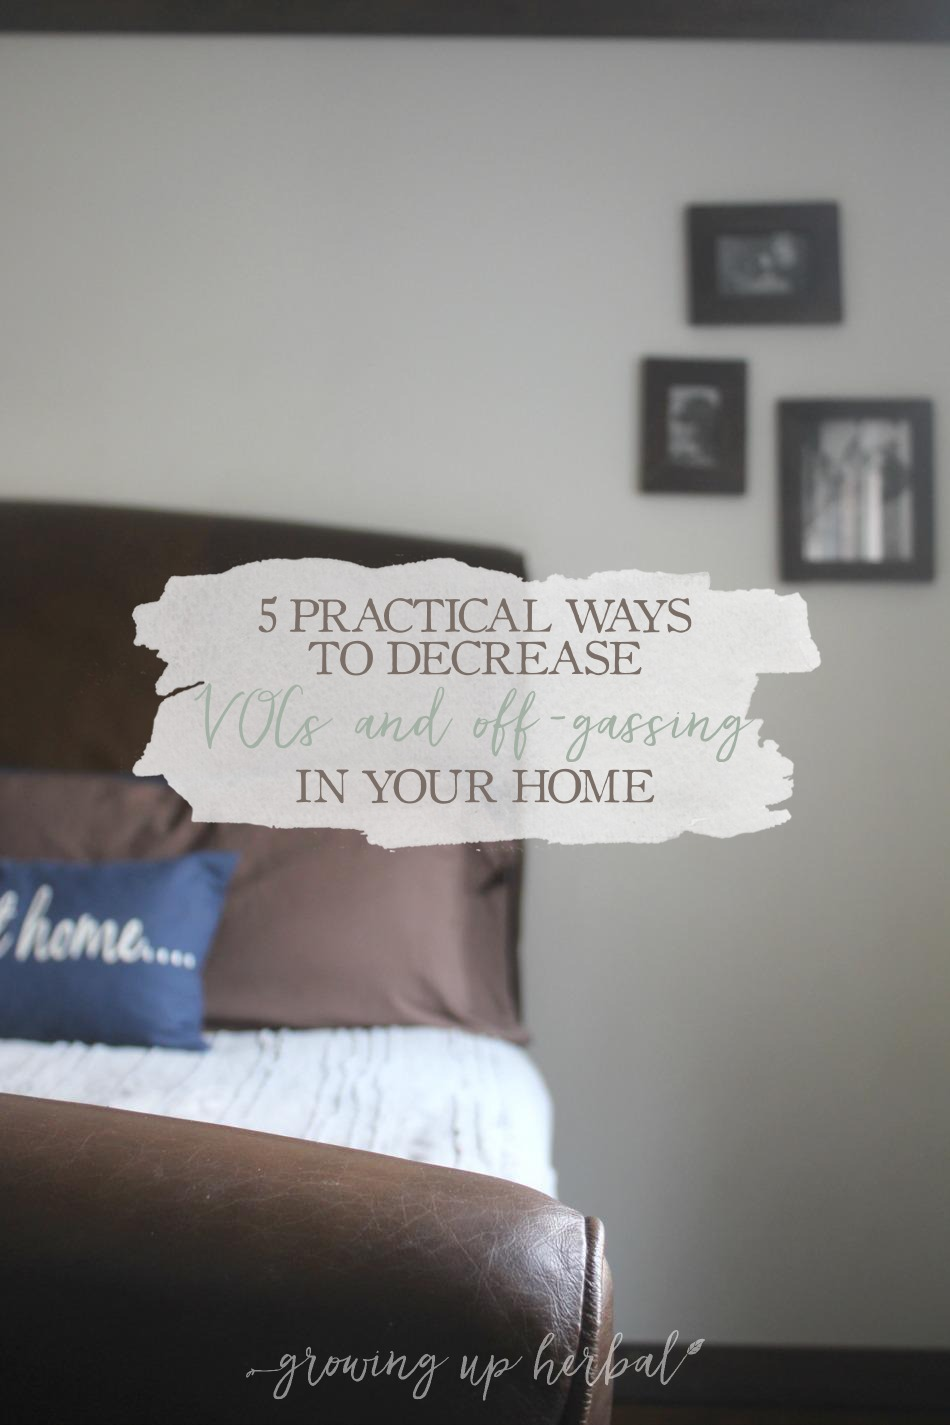 5 Practical Ways To Decrease VOCs And Off-Gassing In Your Home | Growing Up Herbal